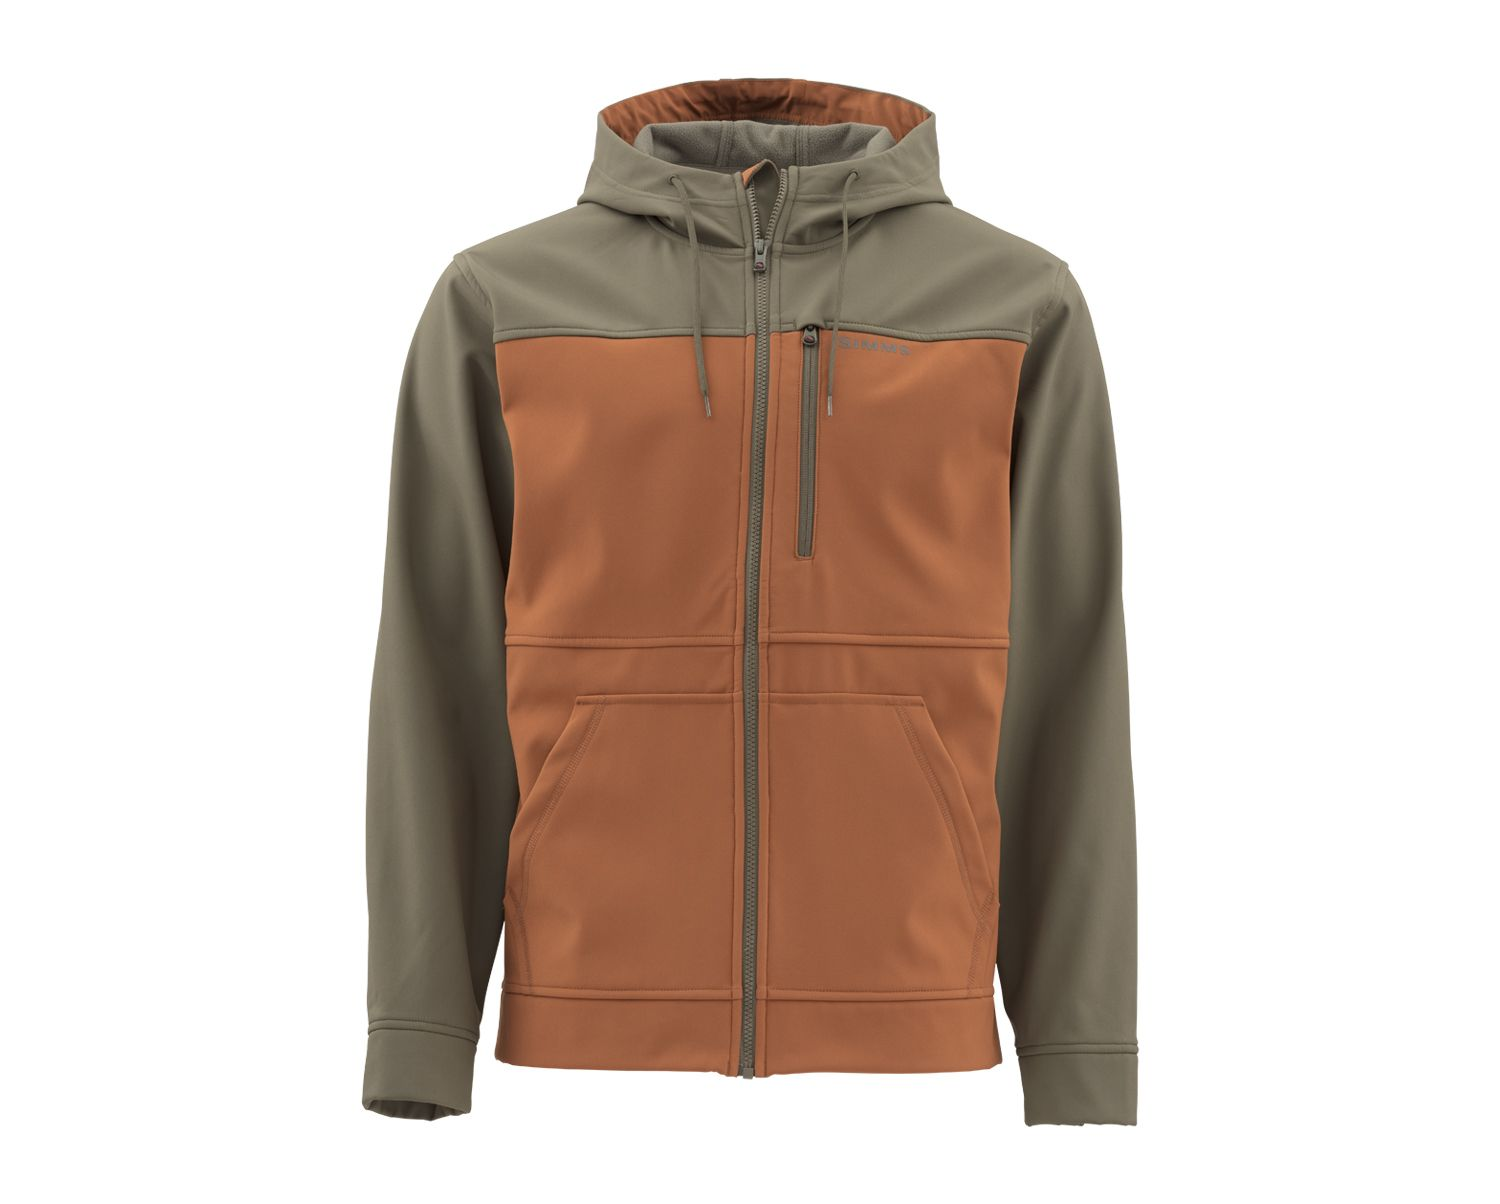 Simms Rogue Hoody - Saddle Brown_1.jpg